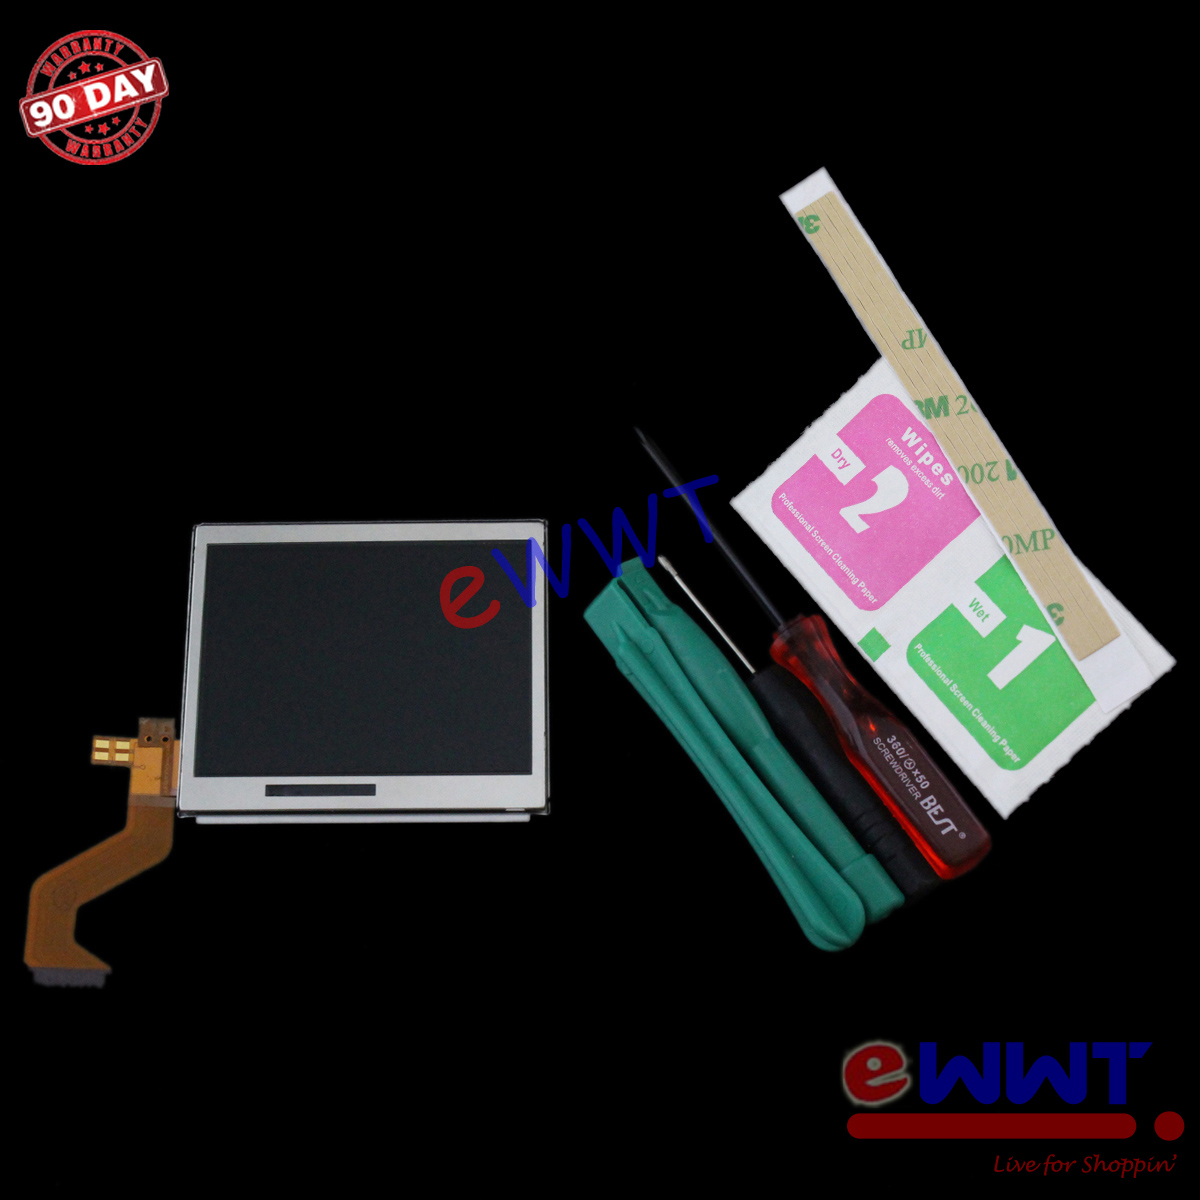 replacement top upper lcd display screen tools for ndsl nintendo ds lite zvls060 ebay. Black Bedroom Furniture Sets. Home Design Ideas